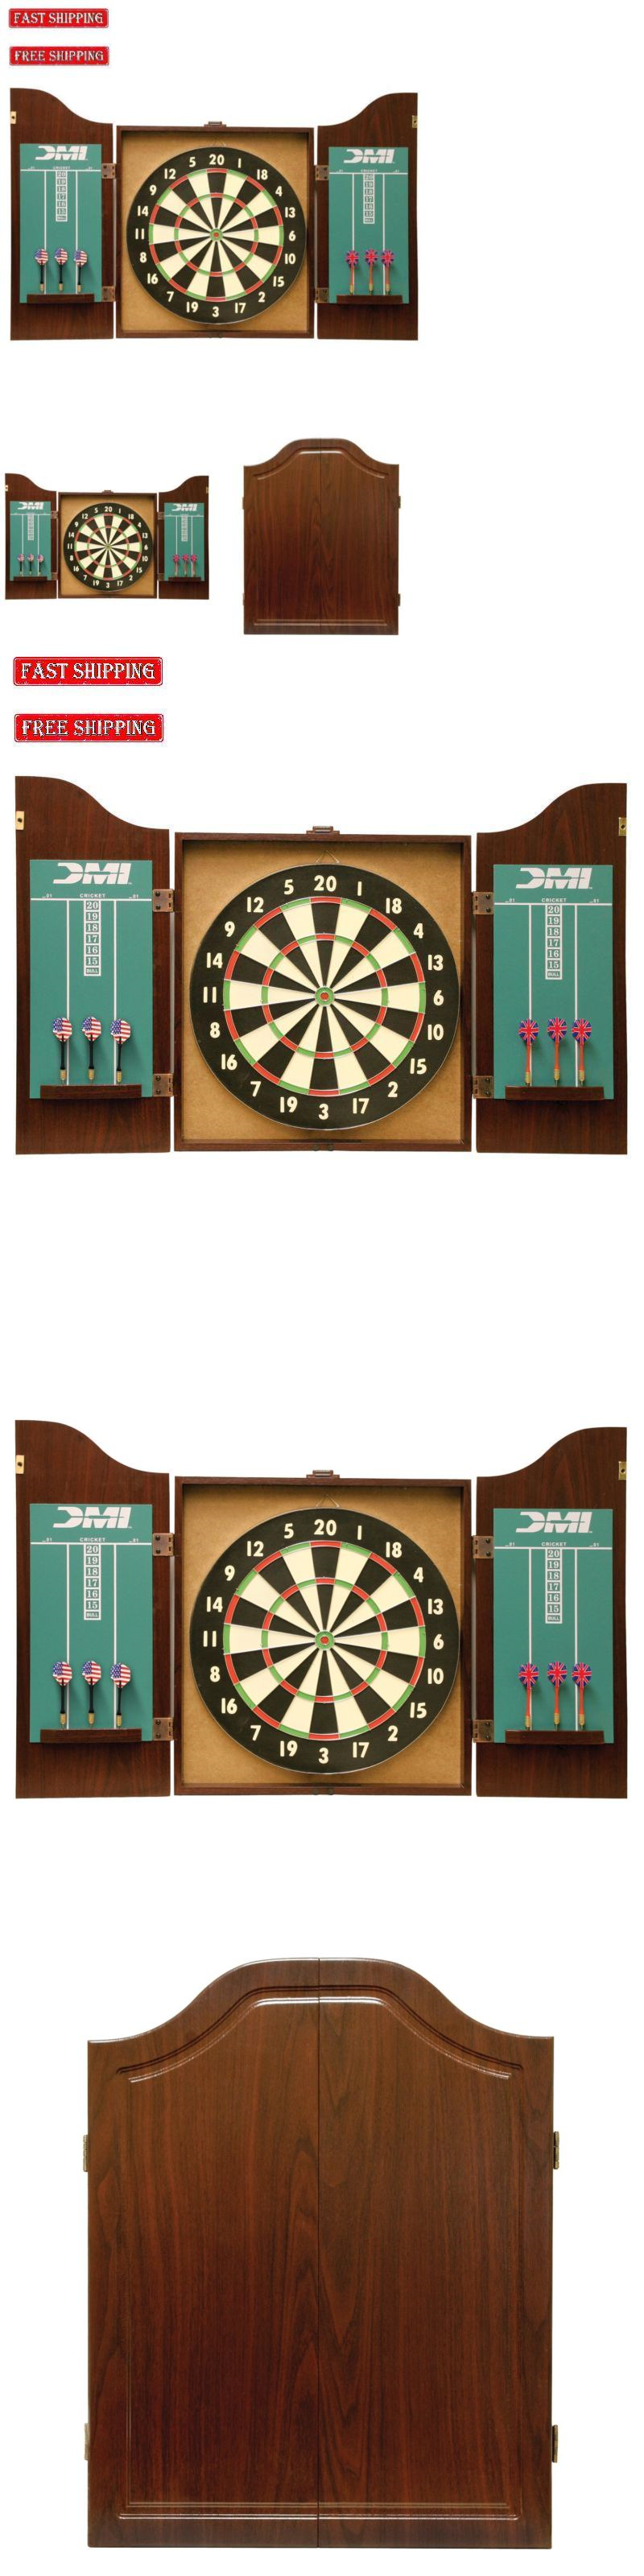 Dart Boards 72576: Professional Dart Board Cabinet Style Set Solid ...